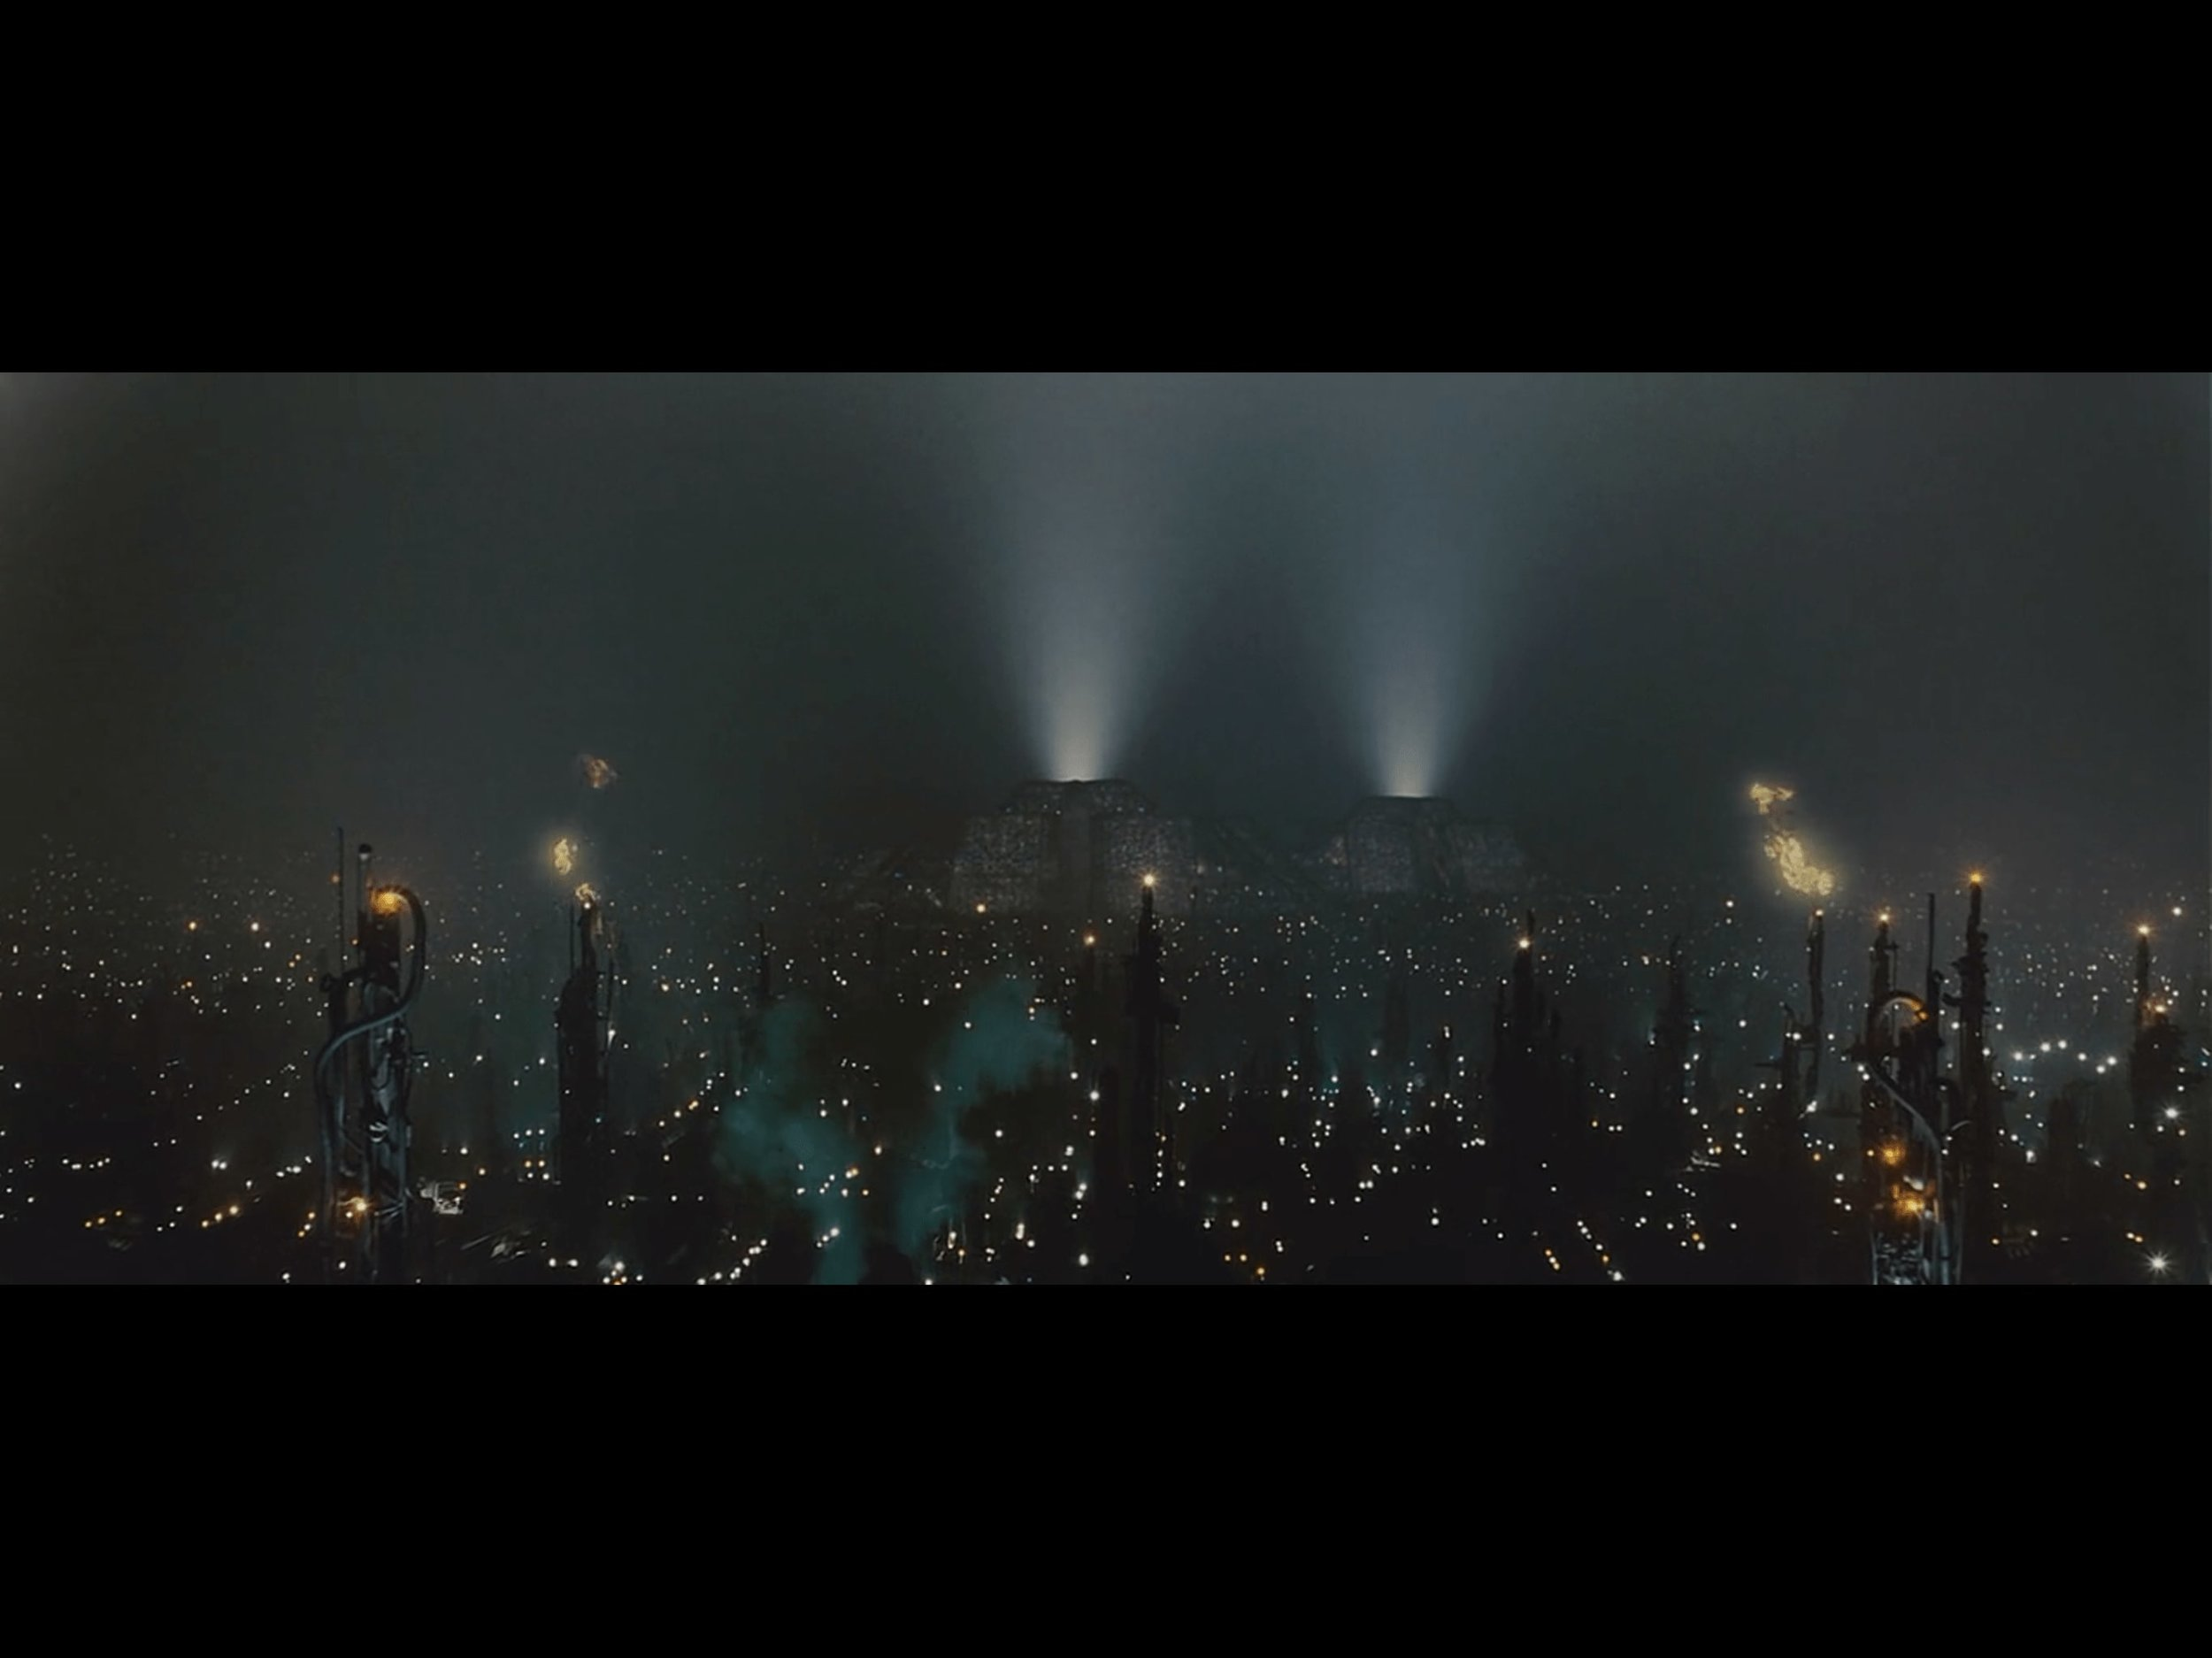 blade-runner-movie-1982-screenshot-1-min.jpg